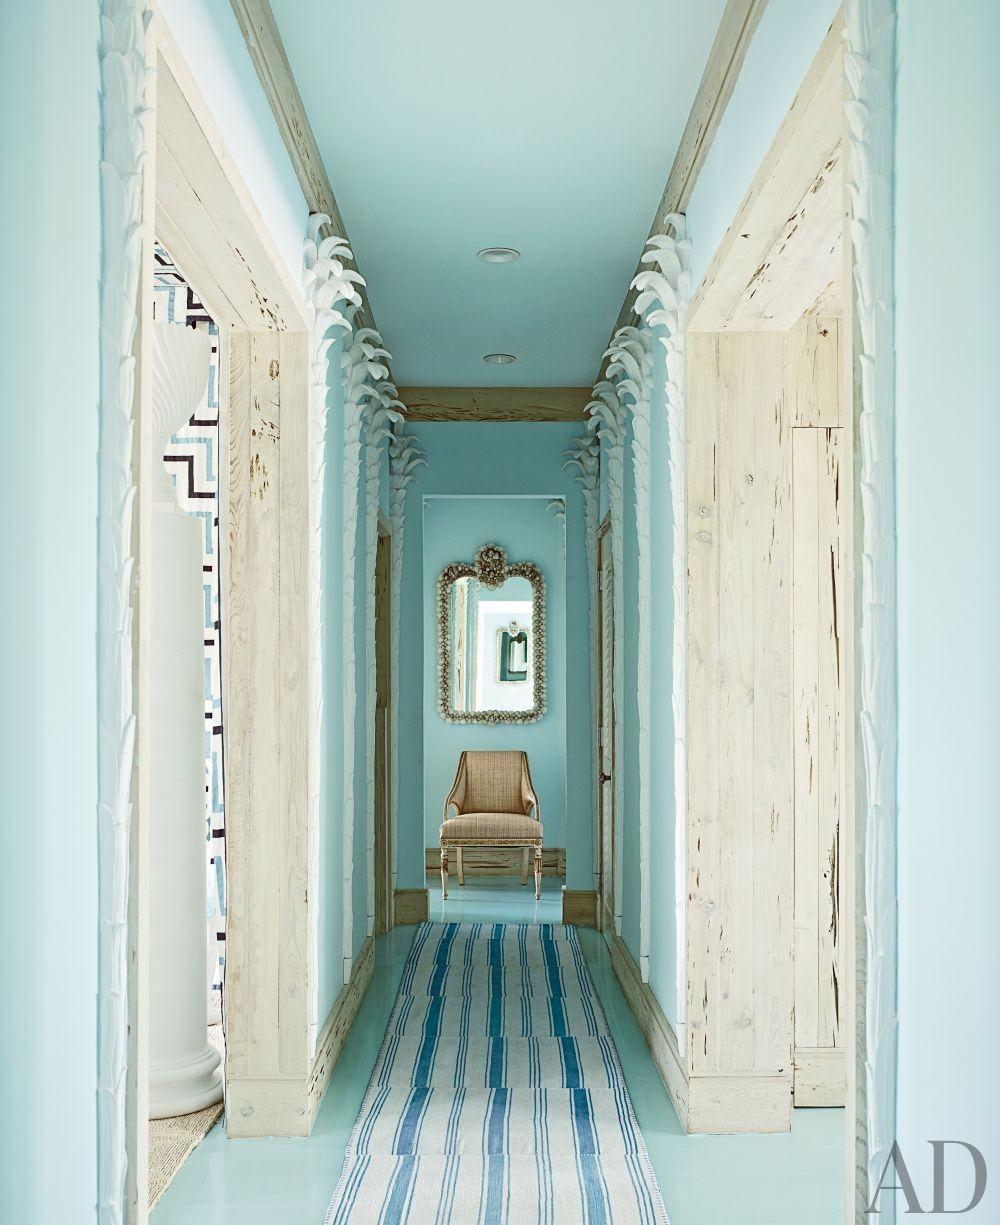 How To Paint A Hallway 5 ways to decorate a narrow hallway - shoproomideas